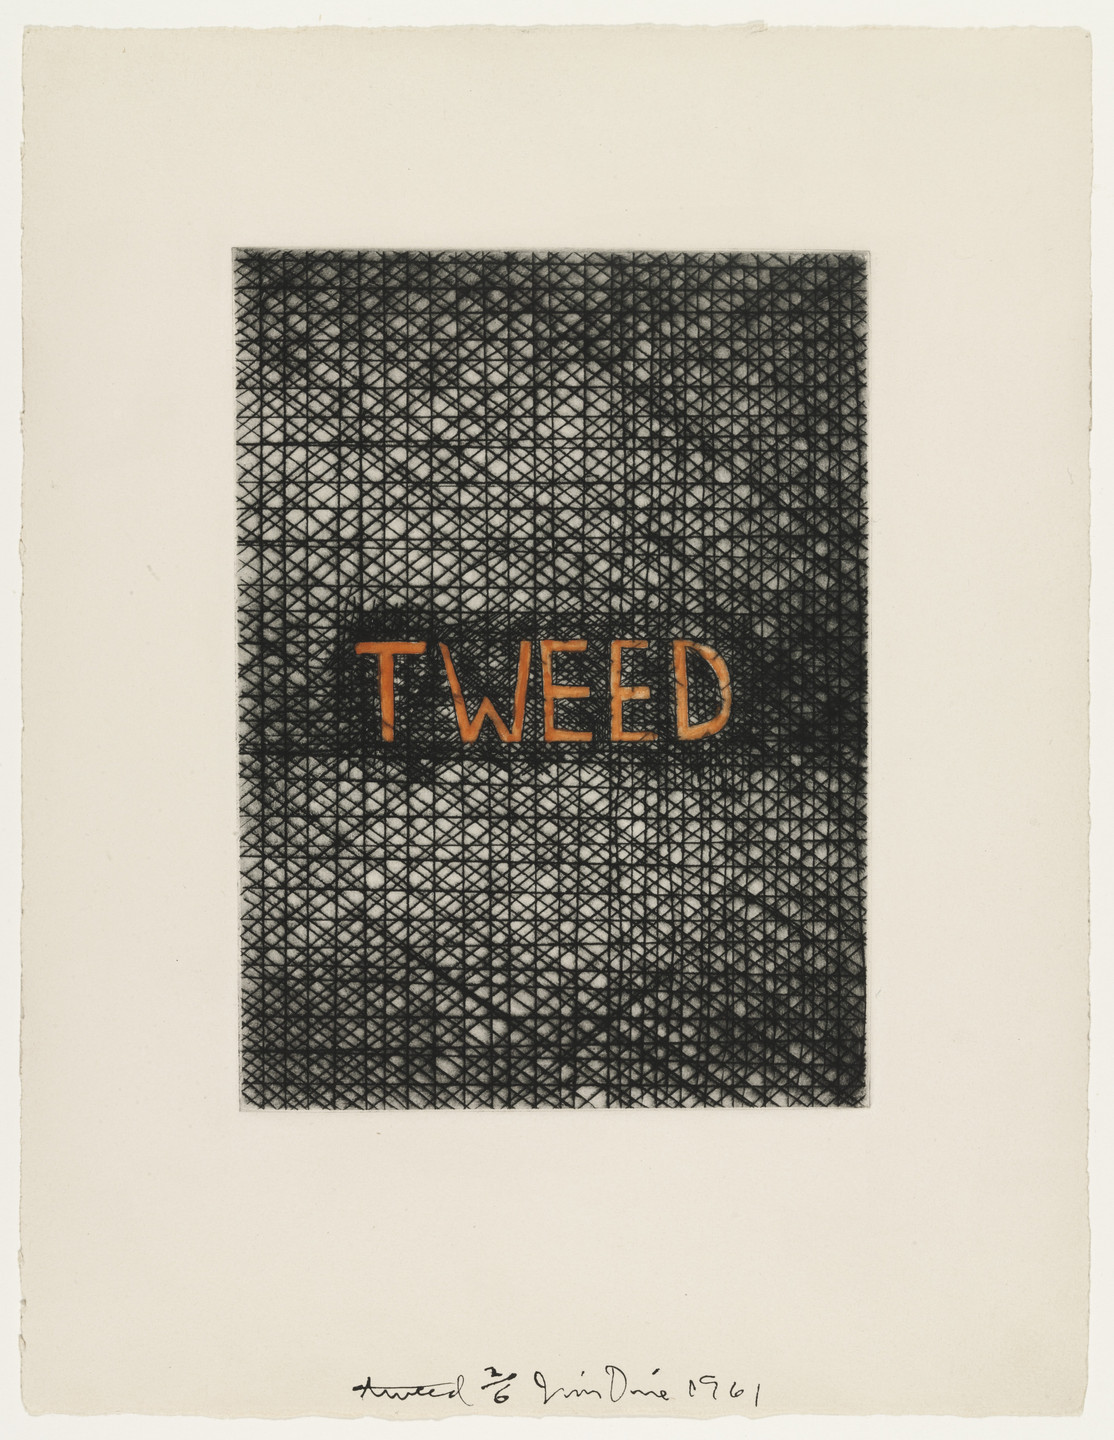 Jim Dine. Tweed fromThese Are Ten Useful Objects Which No One Should Be Without When Traveling. 1961